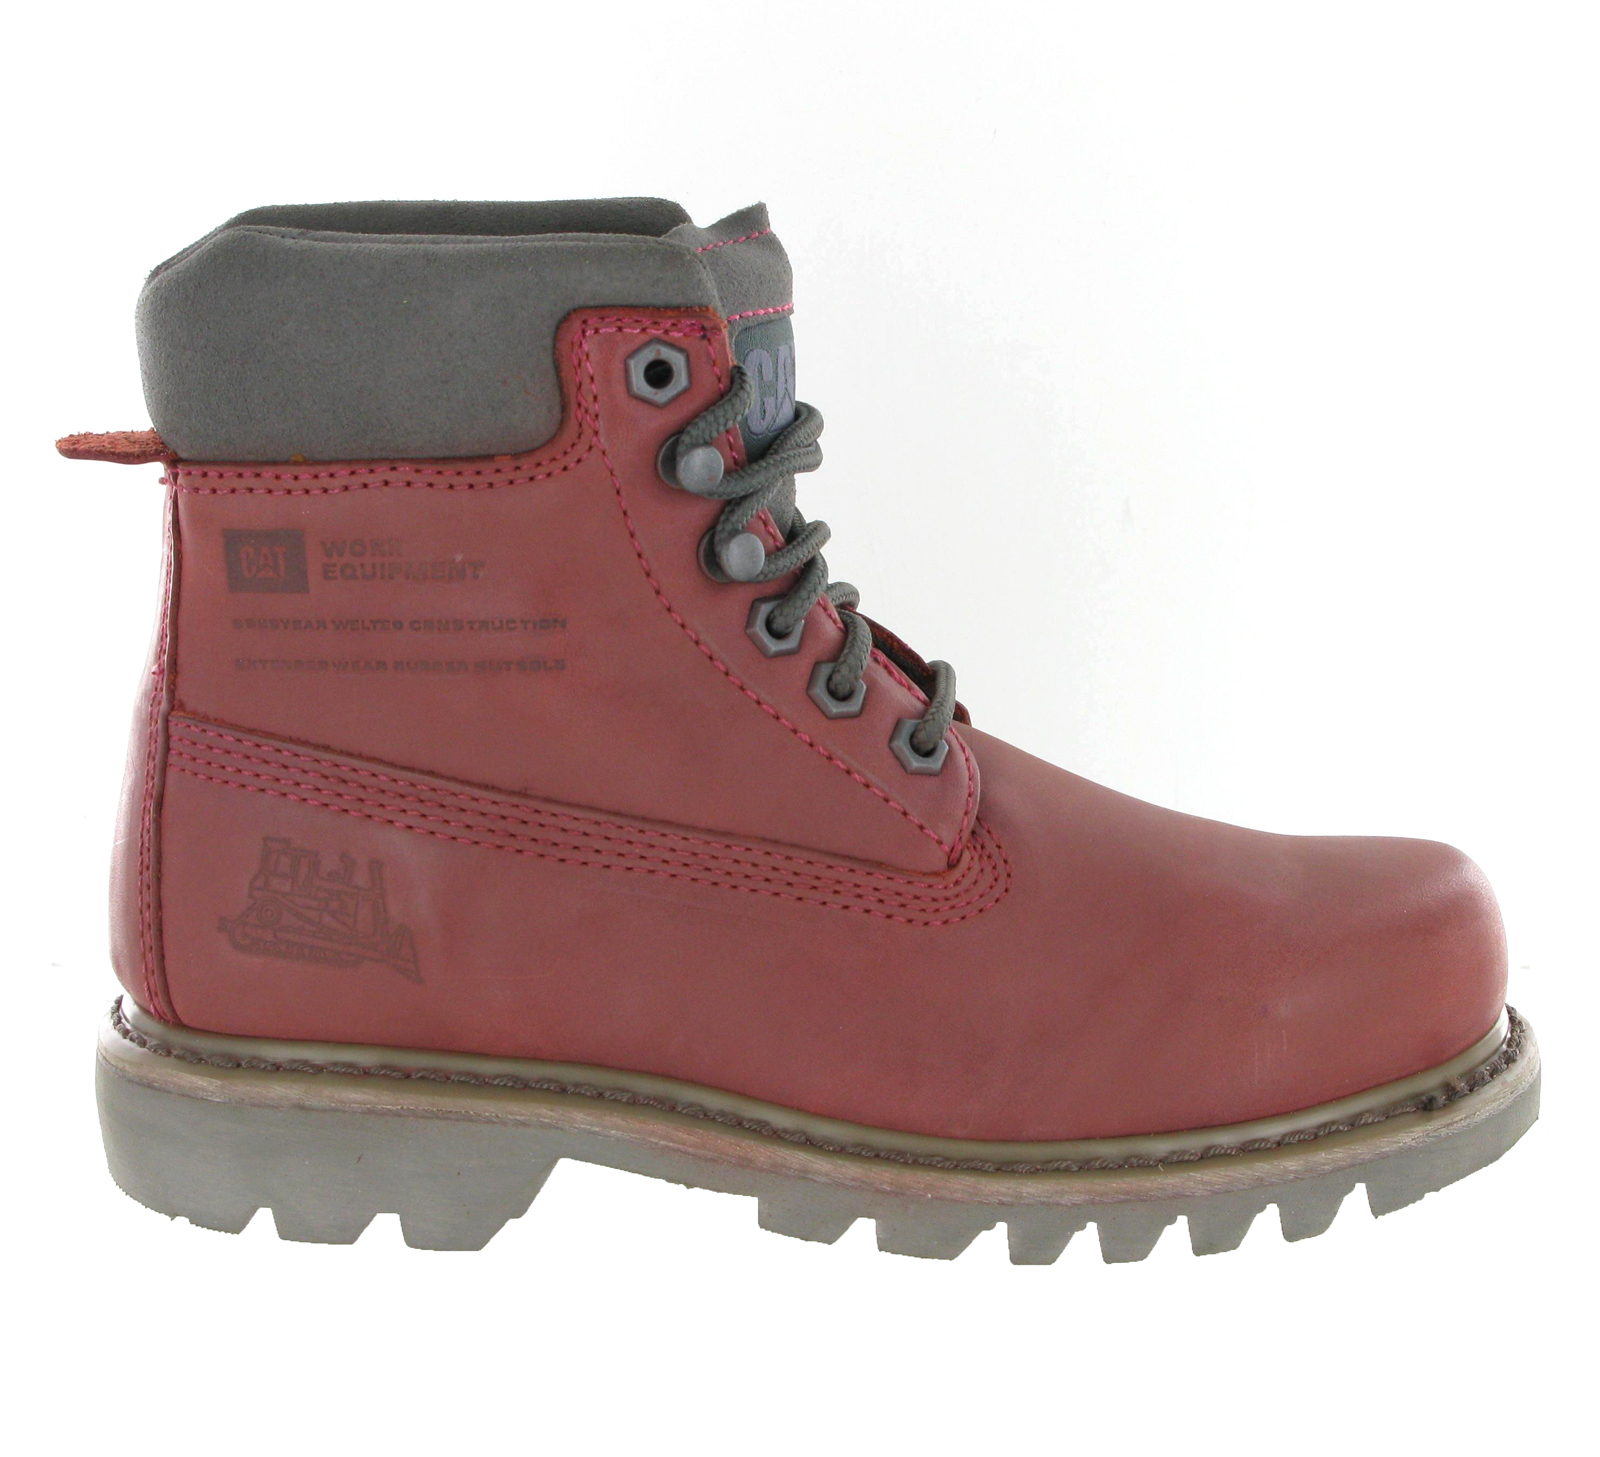 Lastest Caterpillar  Women Boots  Caterpillar Women Fashion  Caterpillar